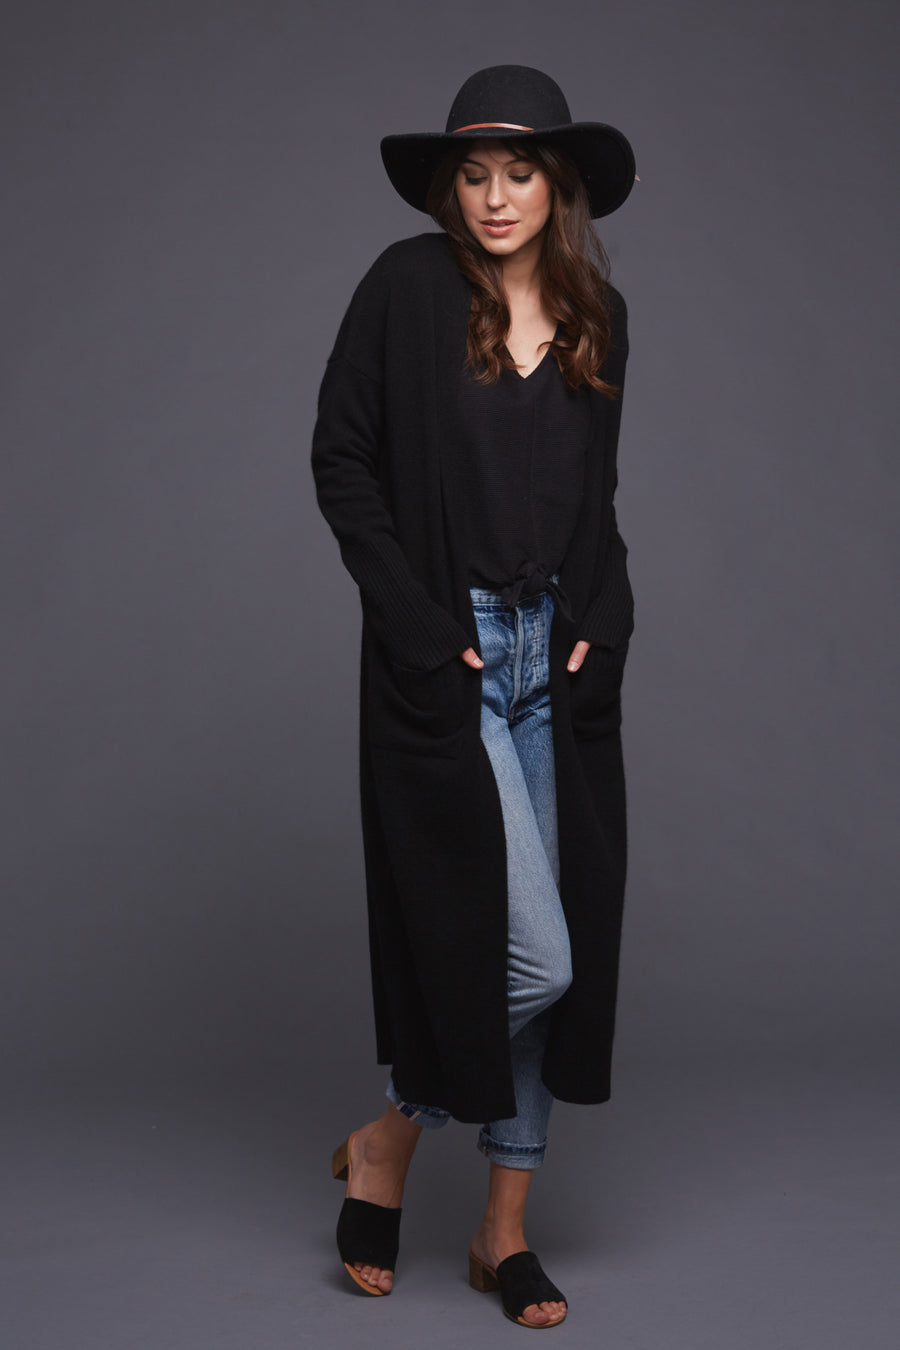 pine cashmere stella women's cashmere wool blend long cardigan coat duster in black